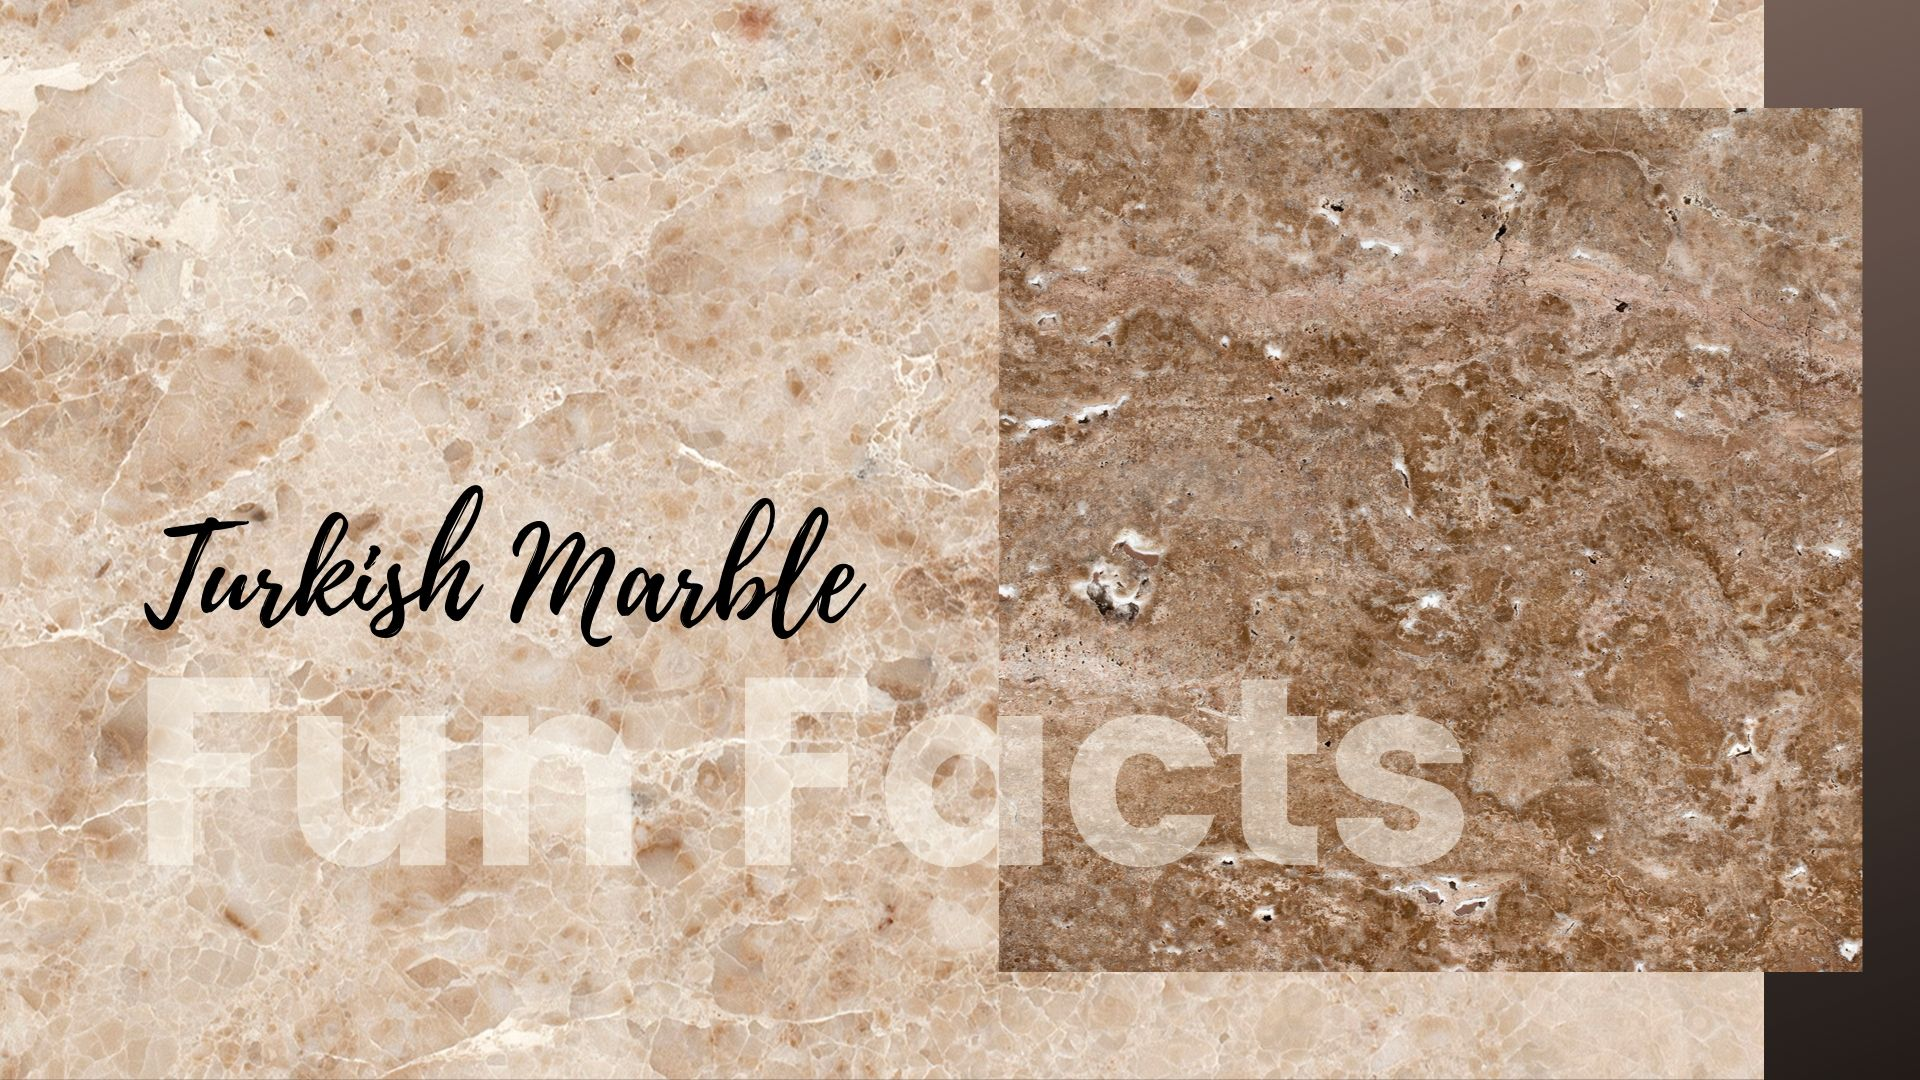 Turkish Marble Facts | Turkish Marble Company